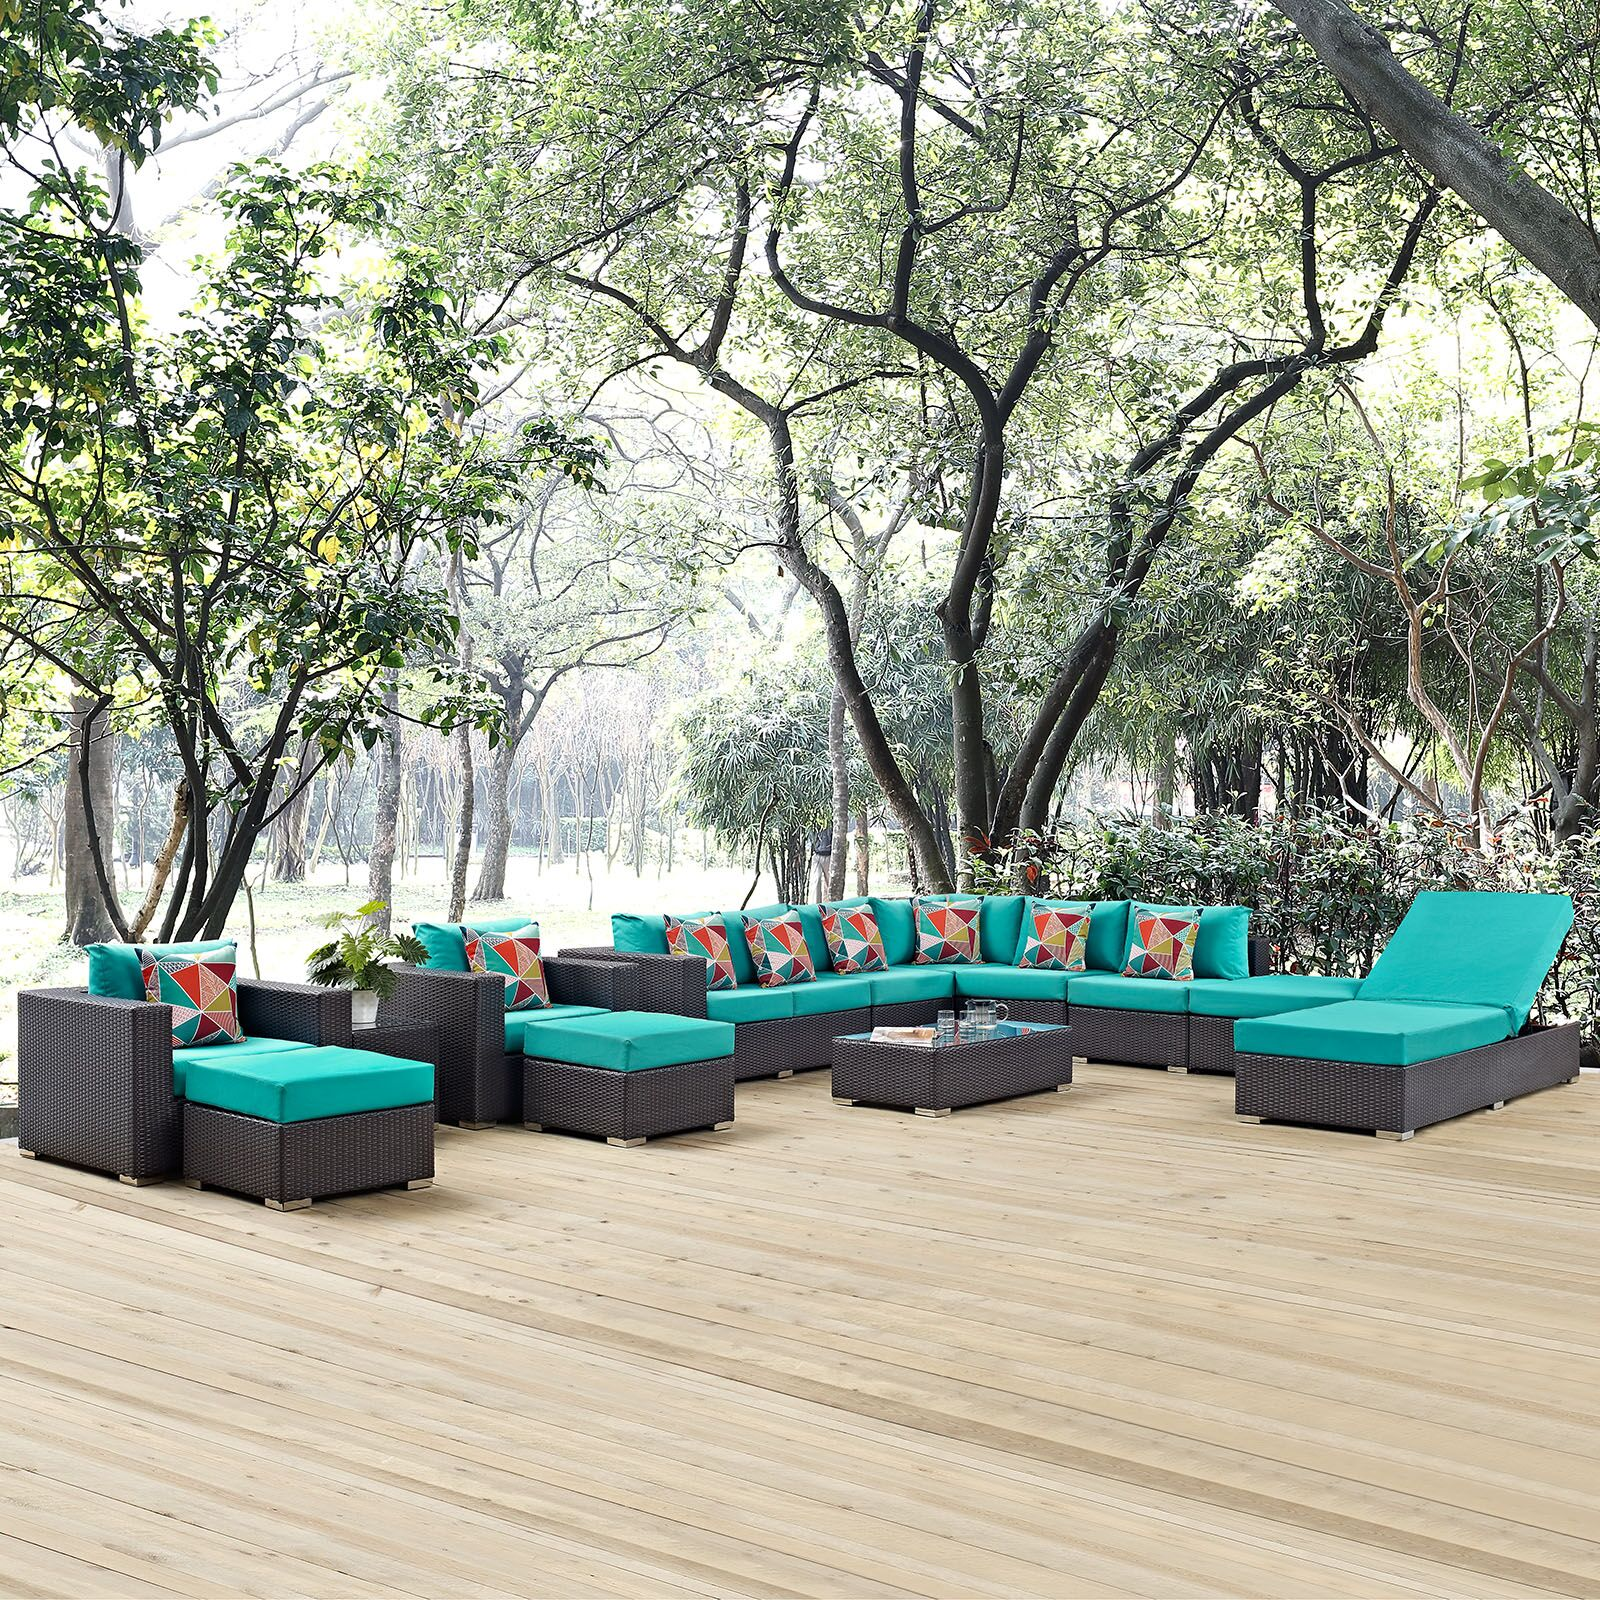 Ryele 12 Piece Rattan Sectional Set with Cushions Fabric: Turquoise